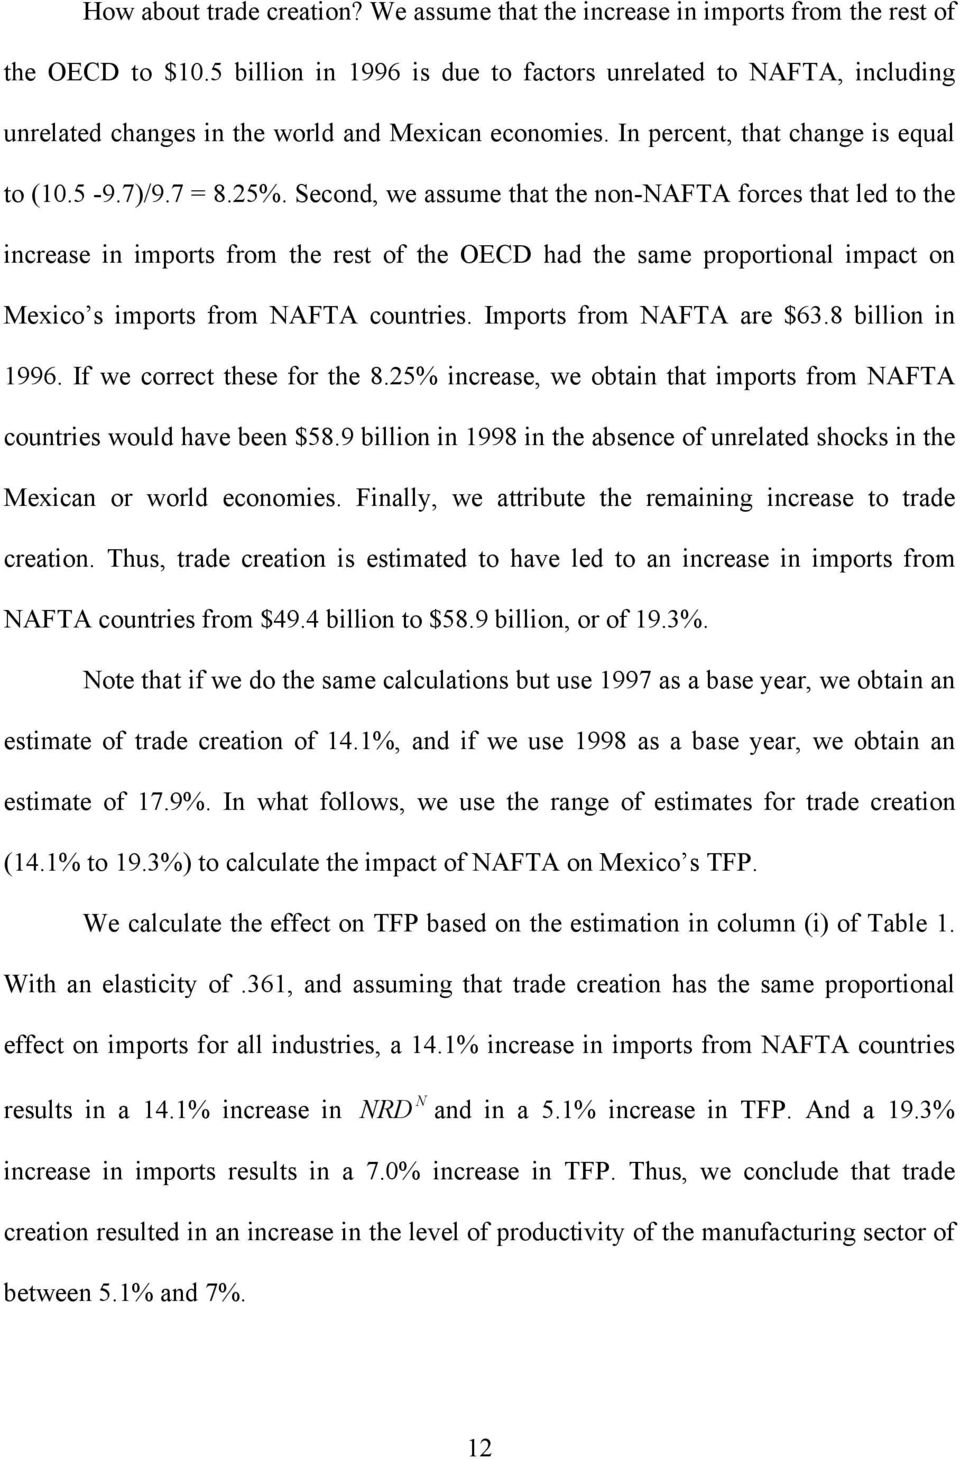 Second, we assume that the non-nafta forces that led to the increase in imports from the rest of the OECD had the same proportional impact on Mexico s imports from NAFTA countries.